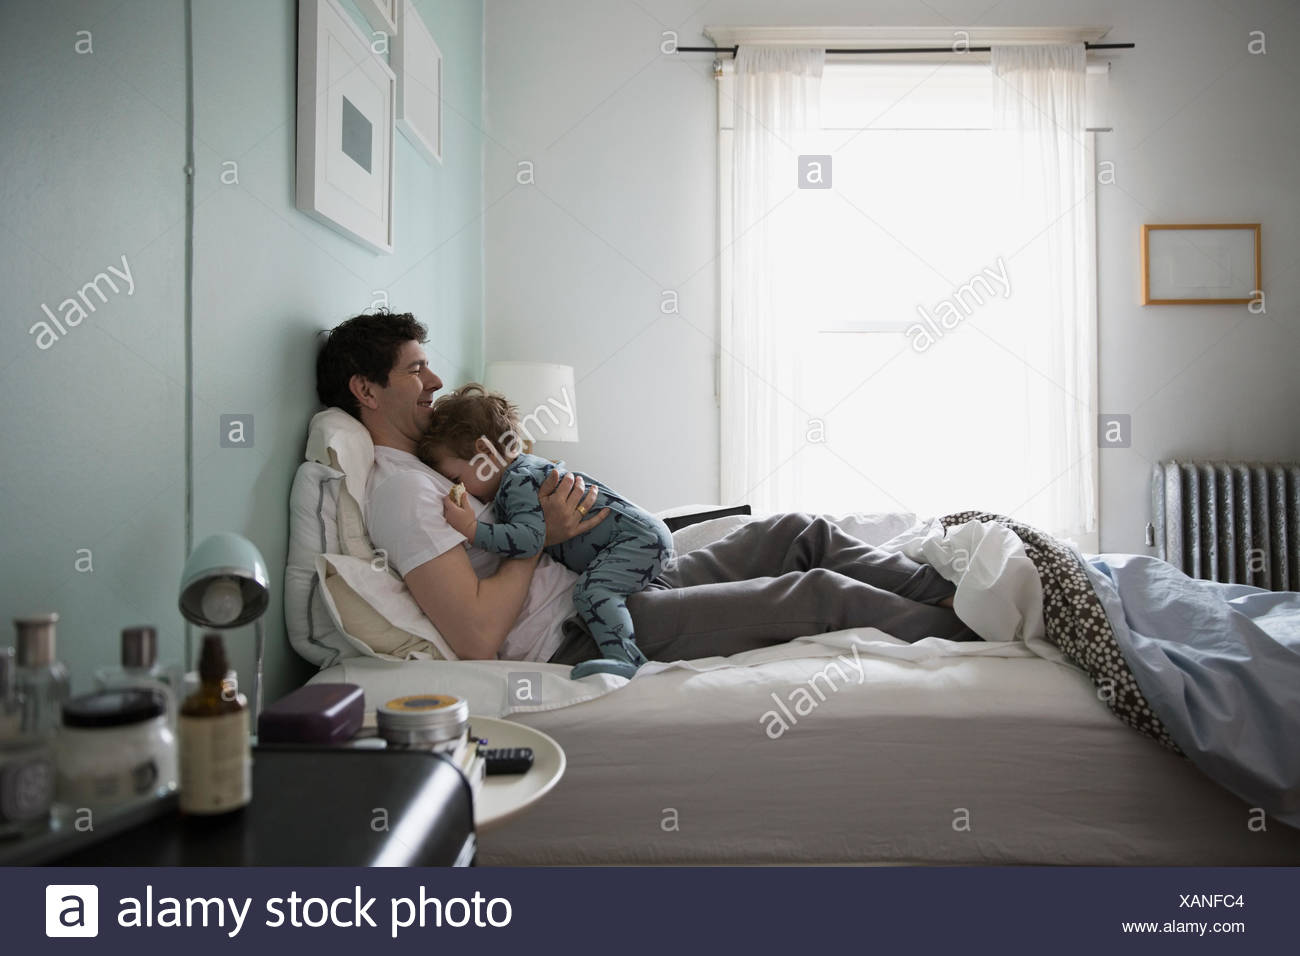 Father cuddling son in pajamas in bed - Stock Image